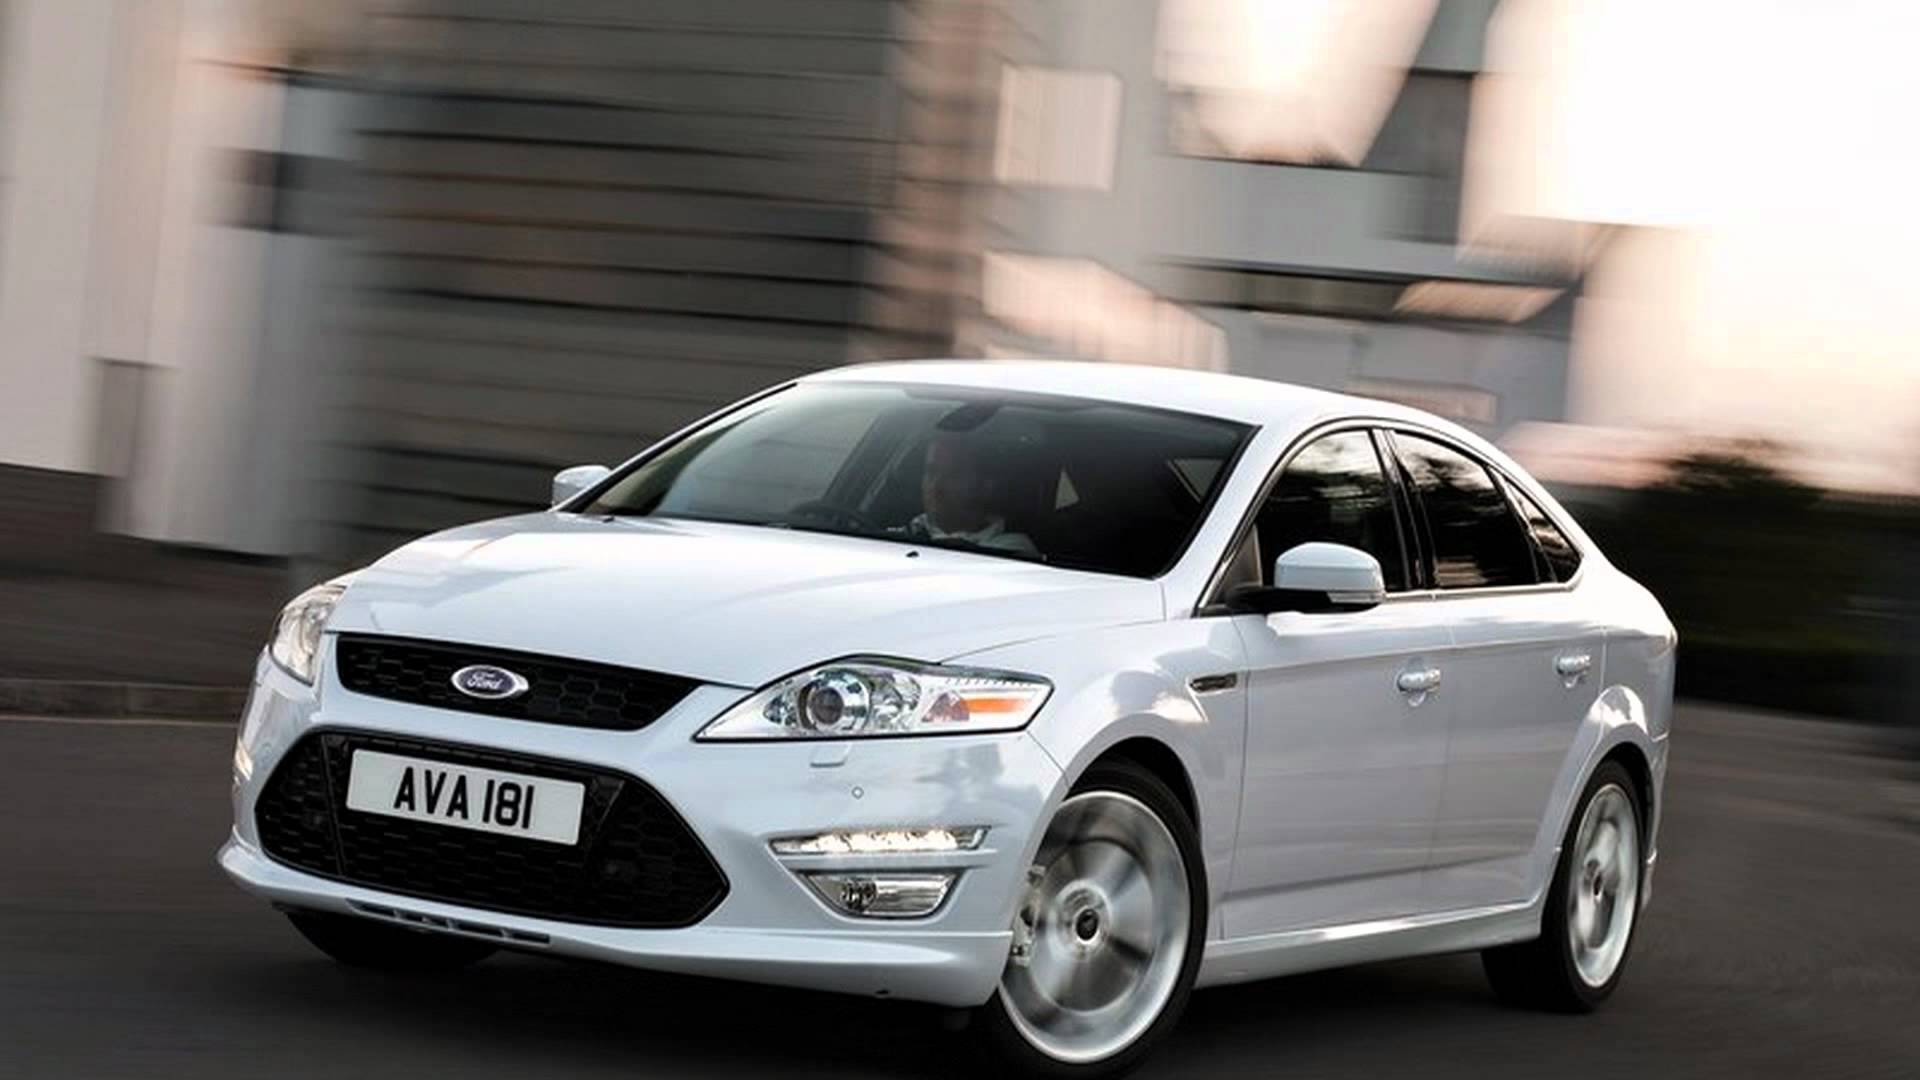 Ford Mondeo IV Restyling 2010 - 2015 Liftback #2